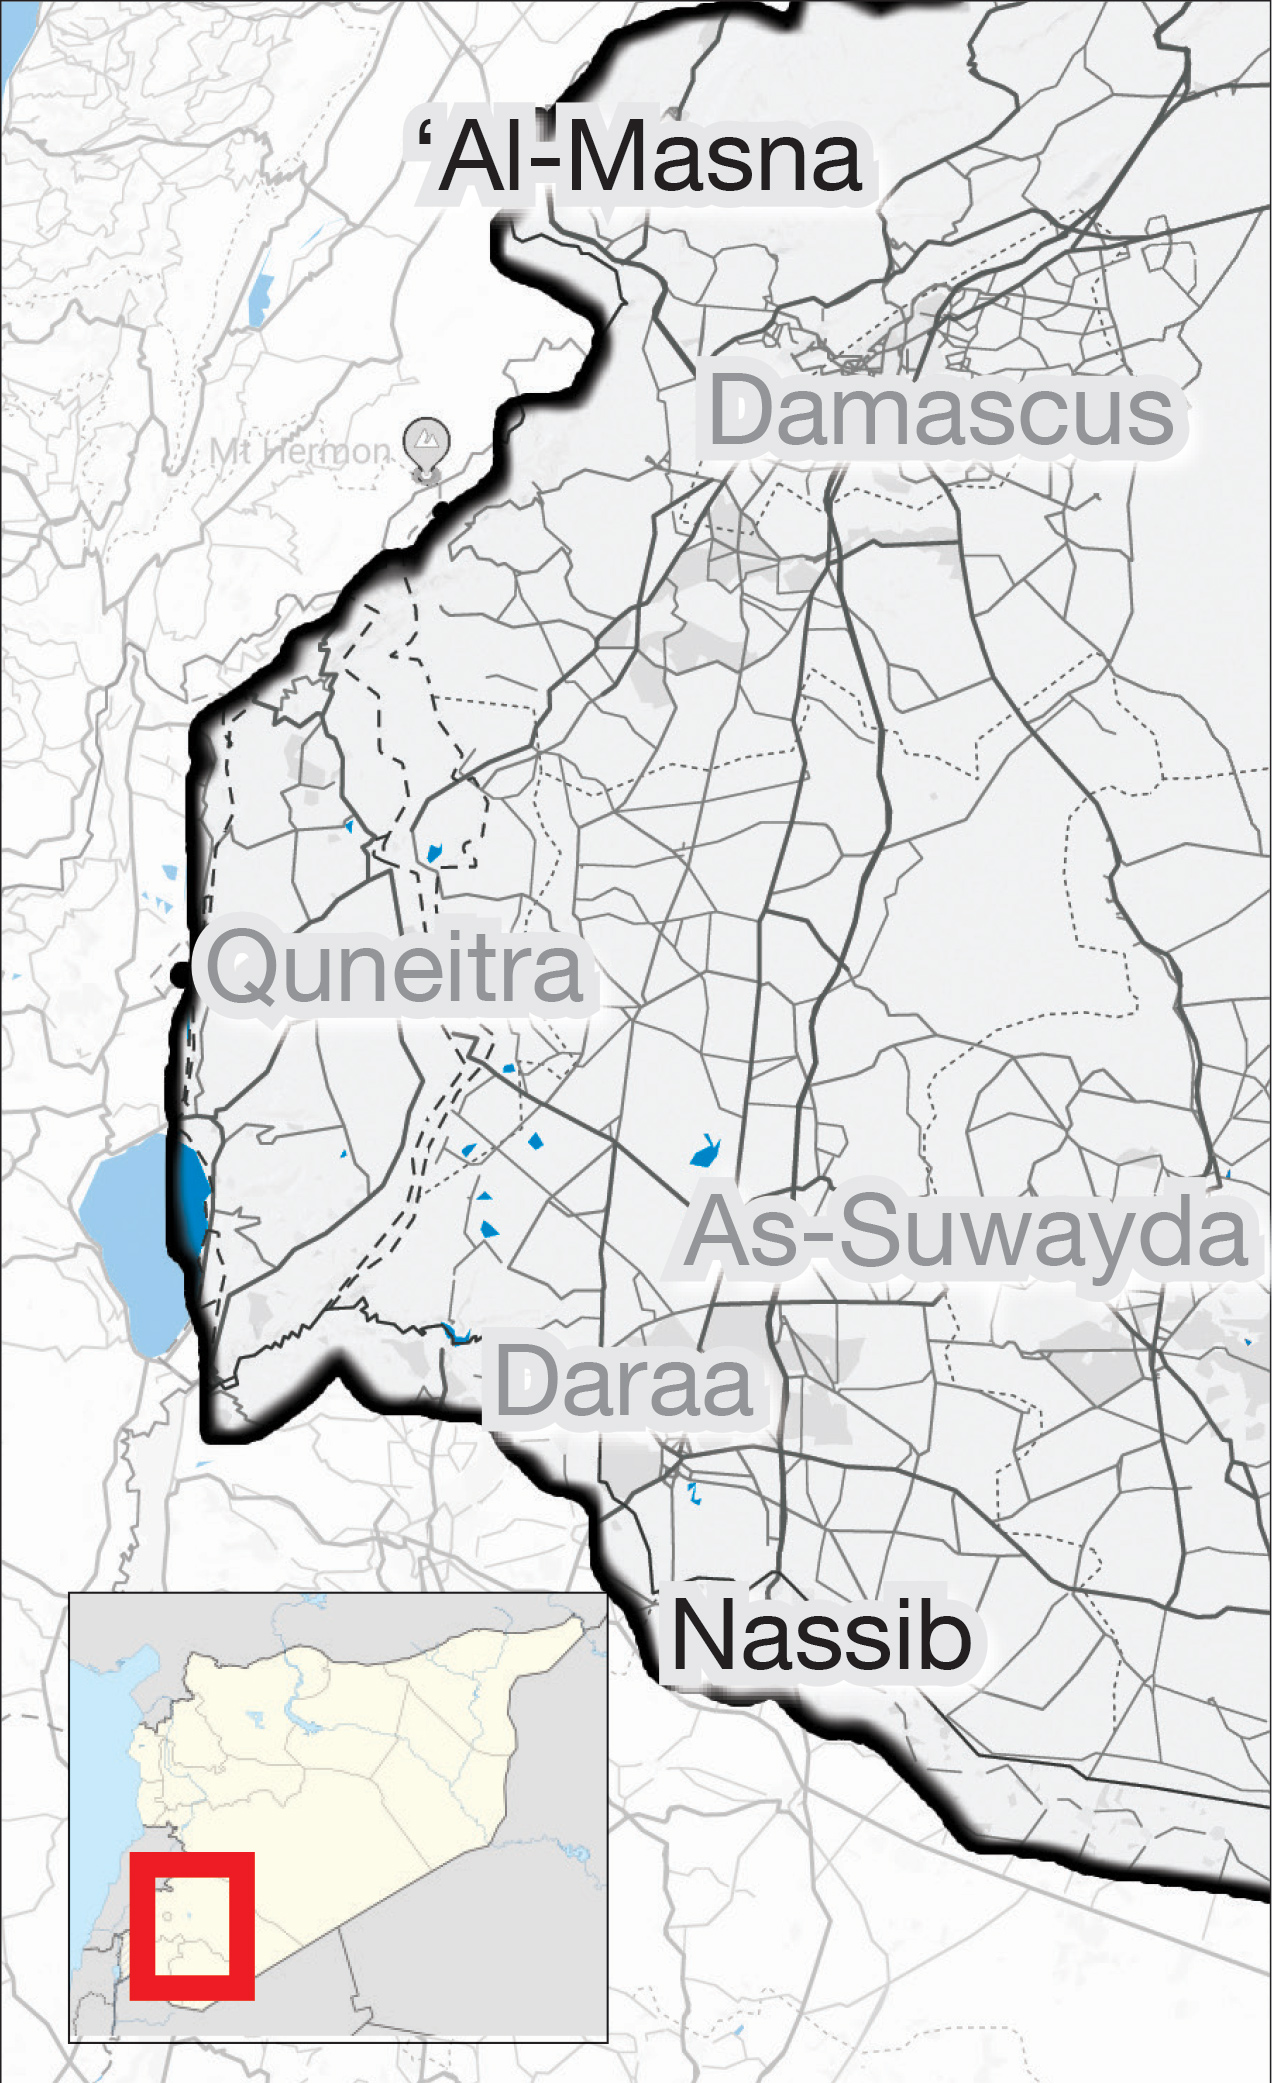 Figures on the economic reality in Jordan in a map showing the border crossings in Southern Syria (Enab Baladi)